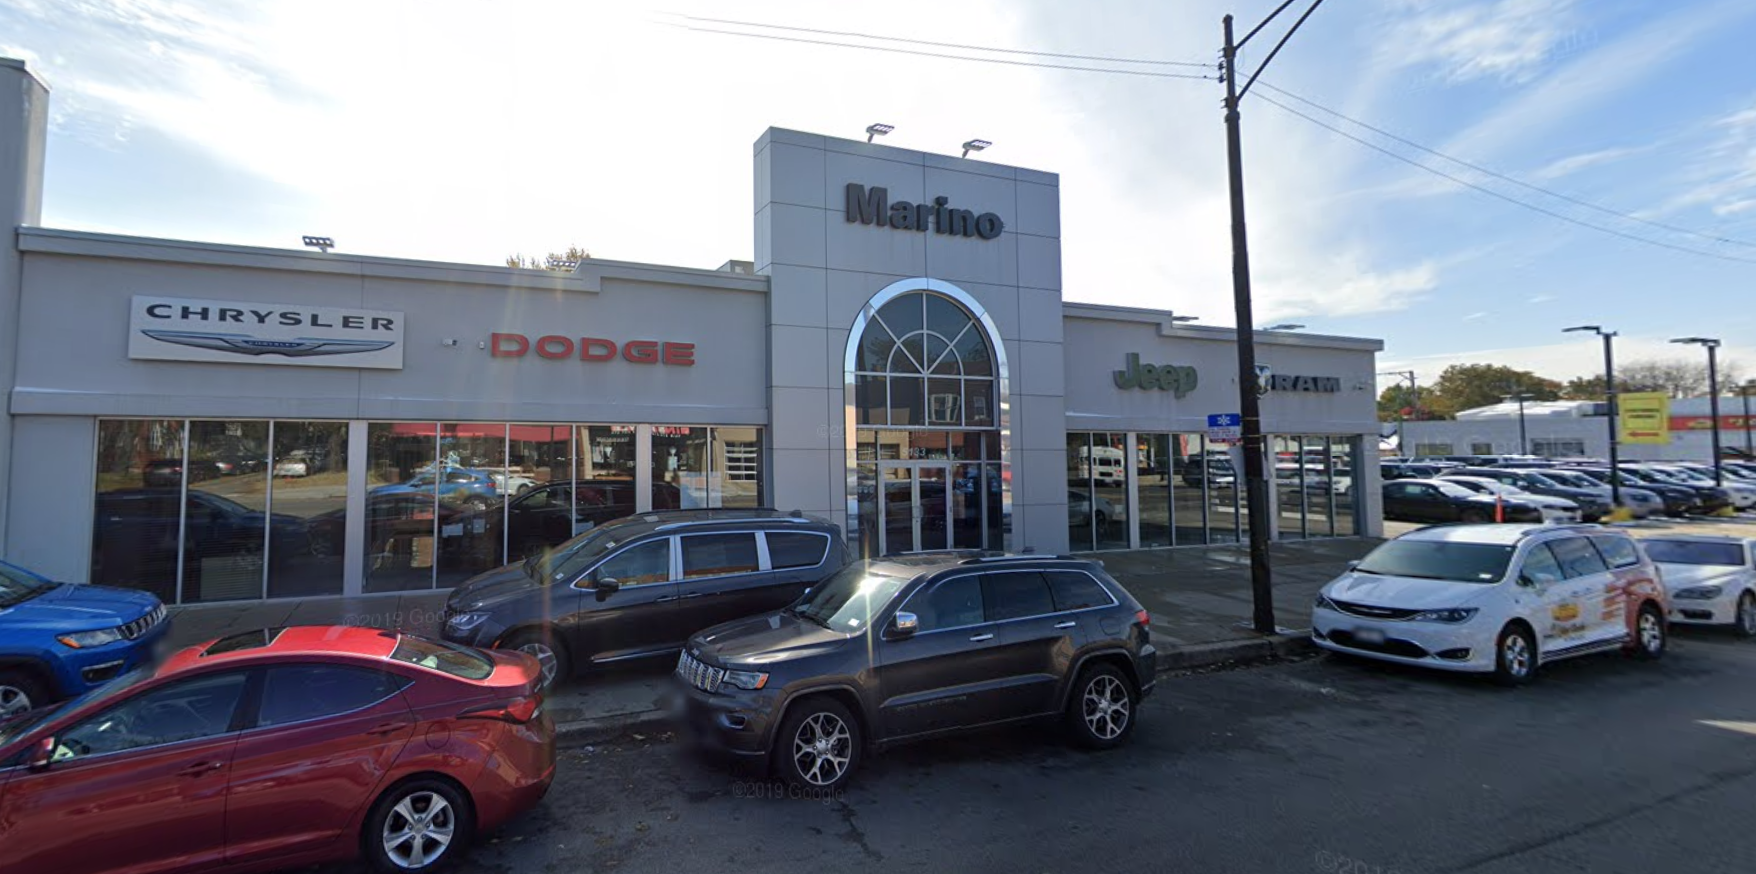 Three people were arrested after a break-in April 25, 2020, at Marino Chrysler Jeep Dodge, 5133 W. Irving Park Road.